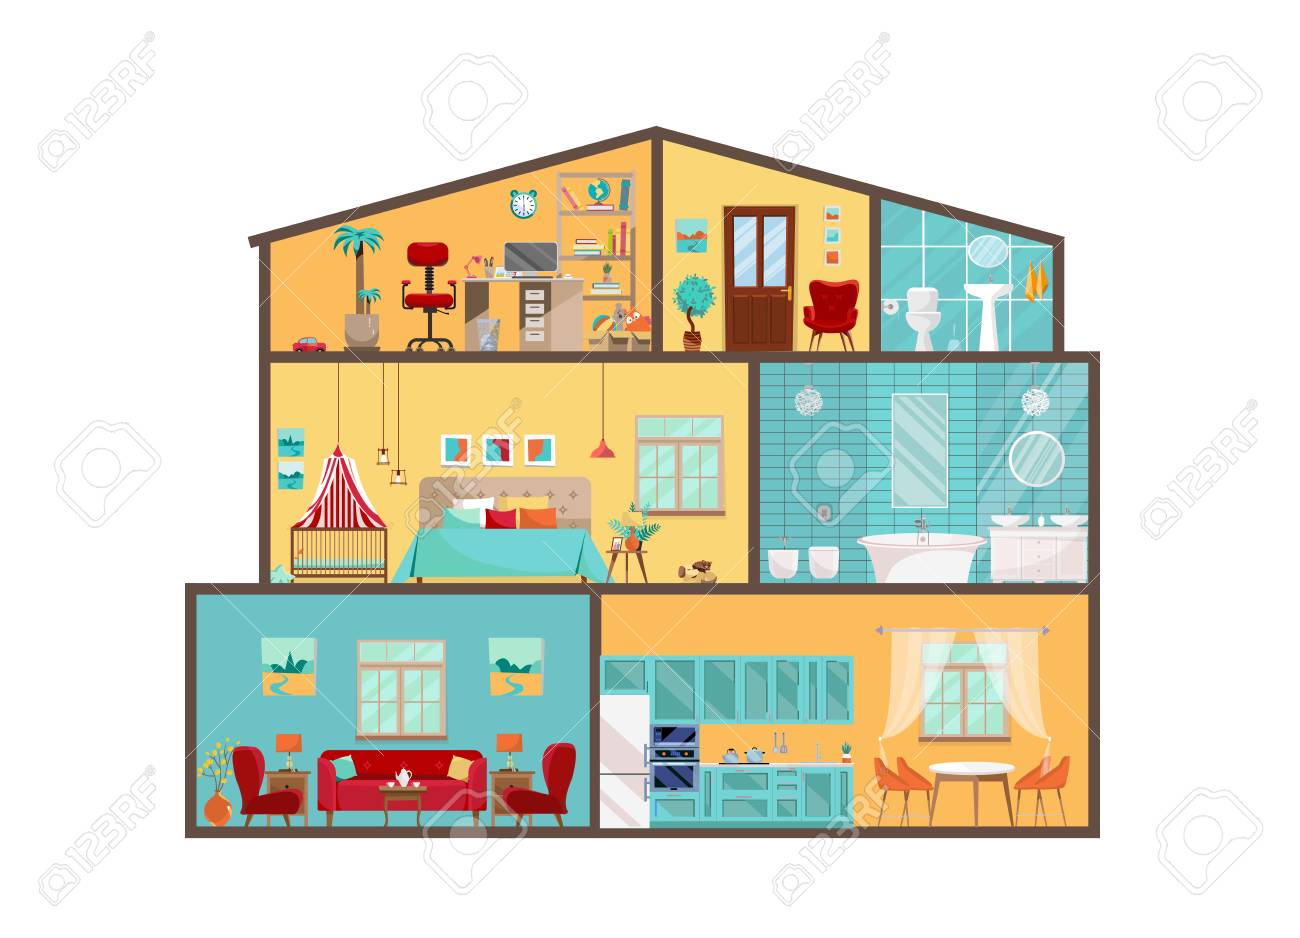 House Model From Inside Detailed Interiors With Furniture And